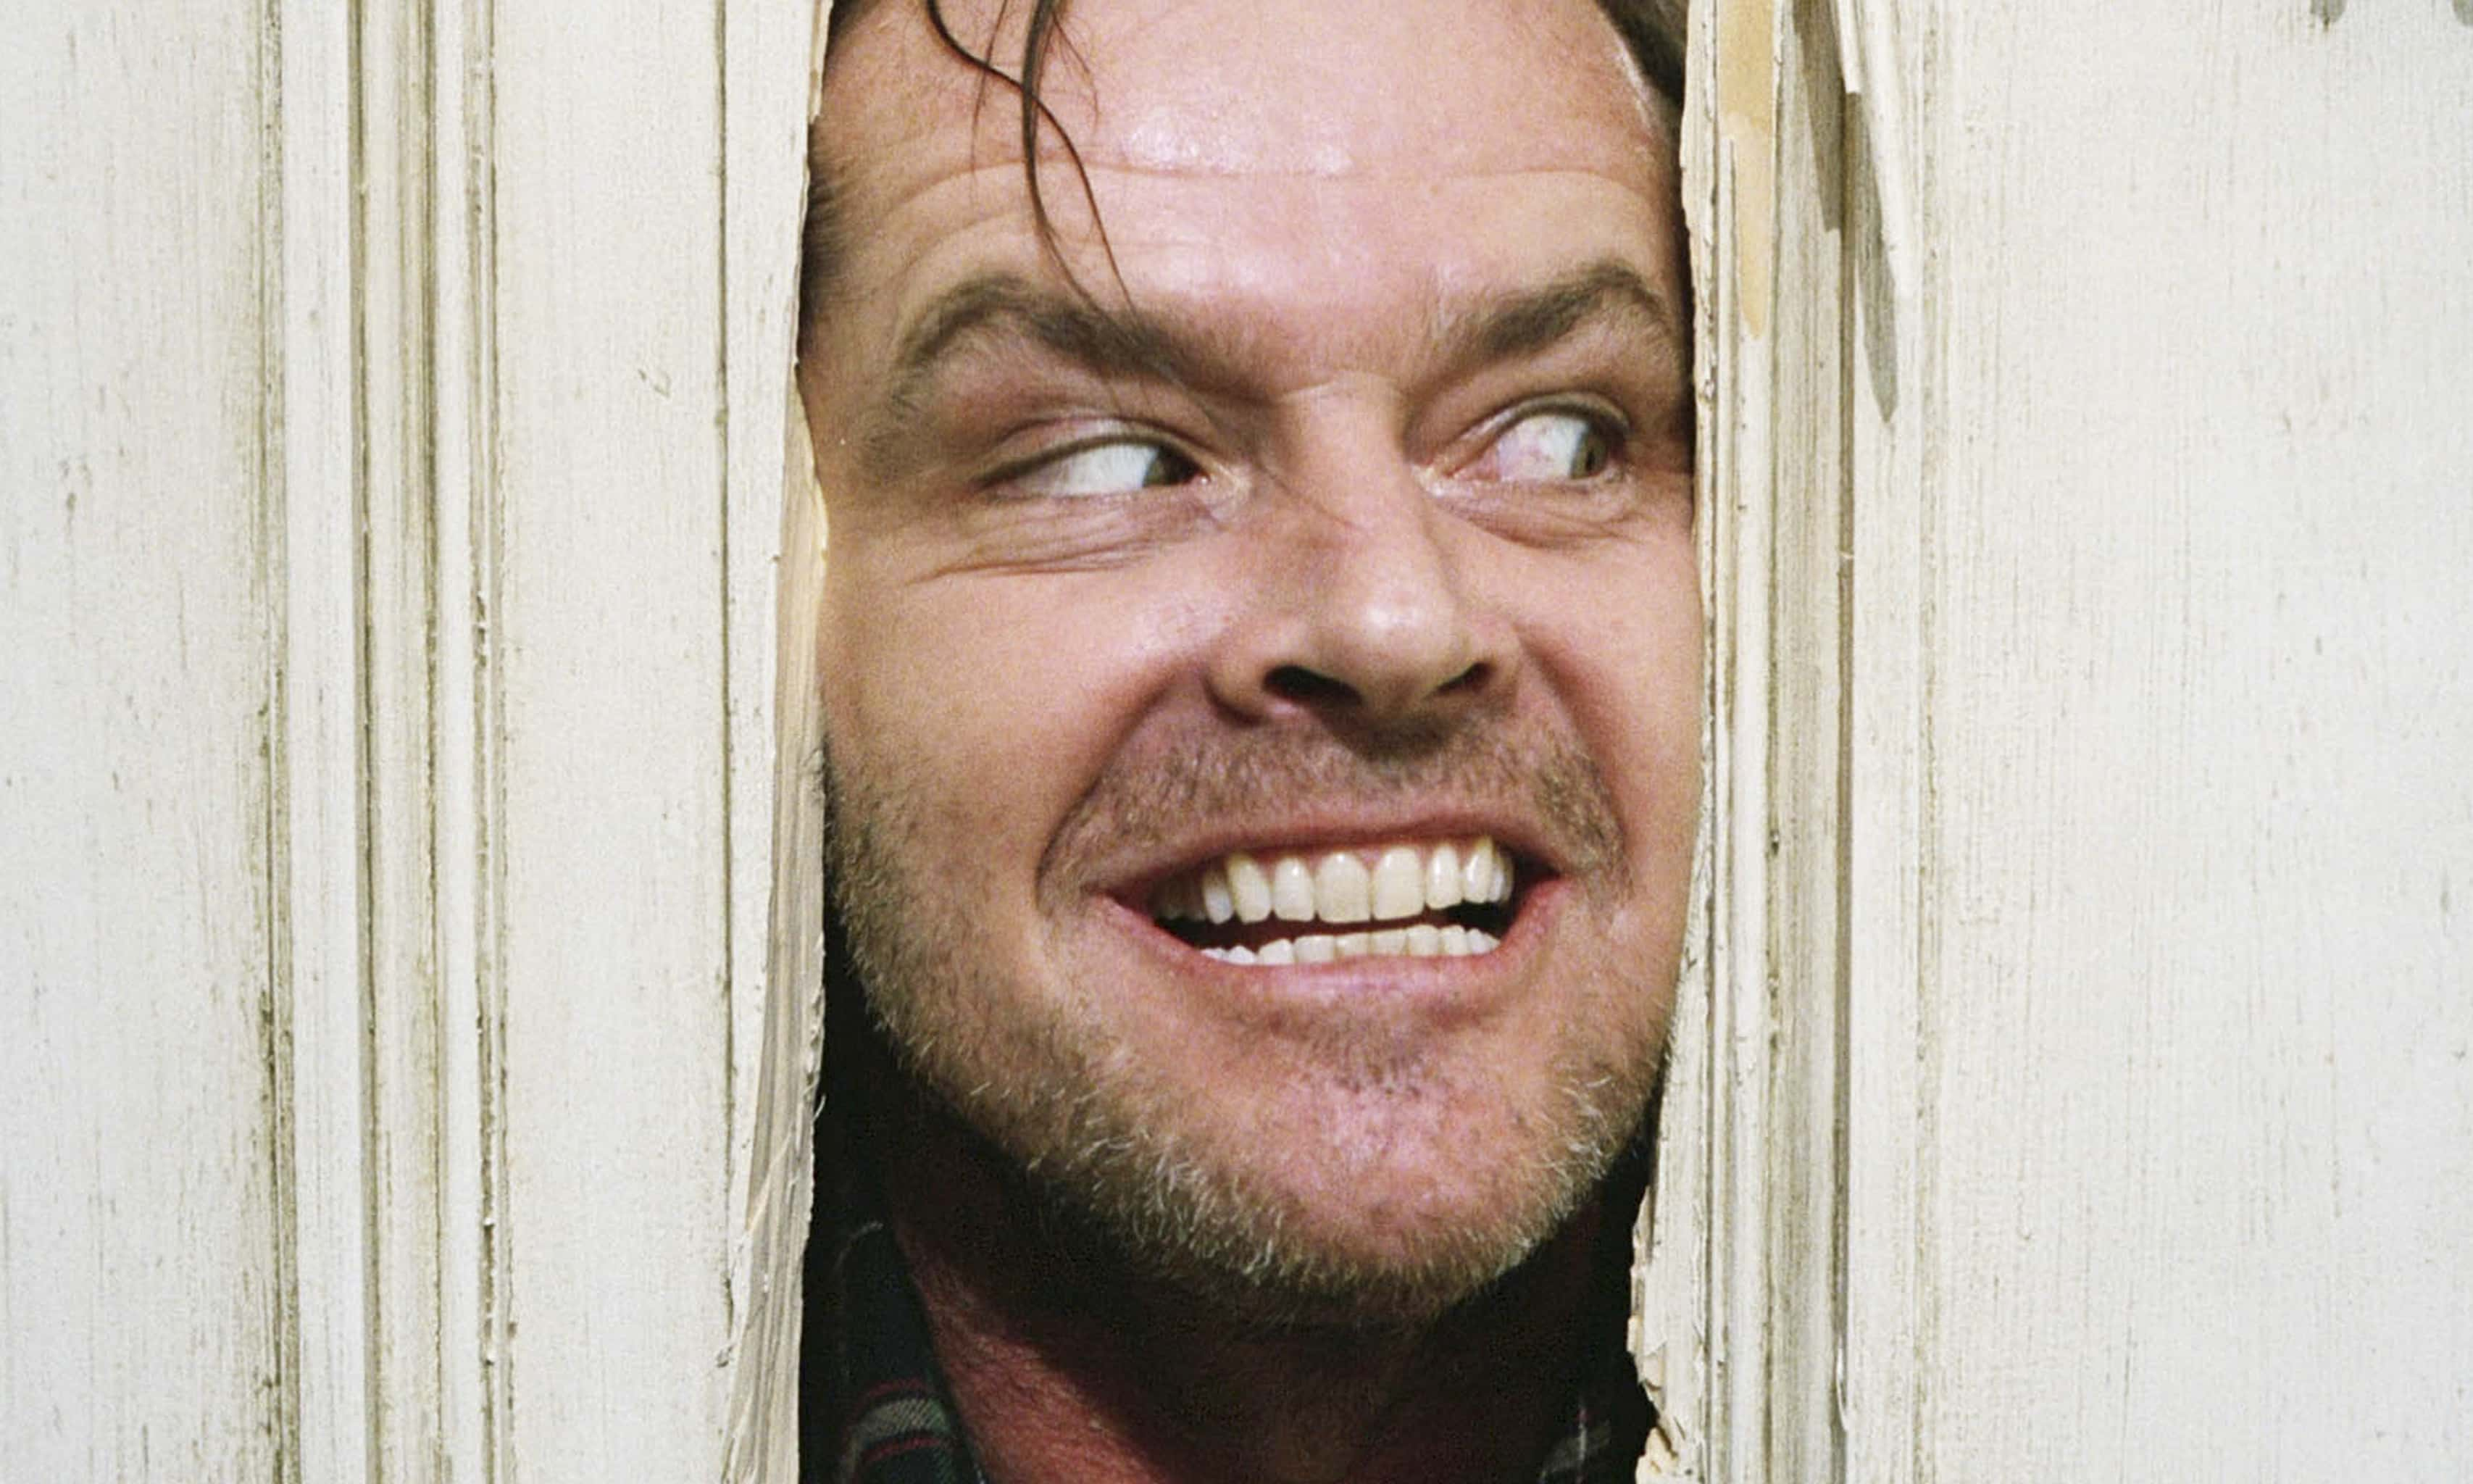 The Big 'Doctor Sleep' Mystery: How Will 'The Shining' Sequel Resurrect Jack Torrance?